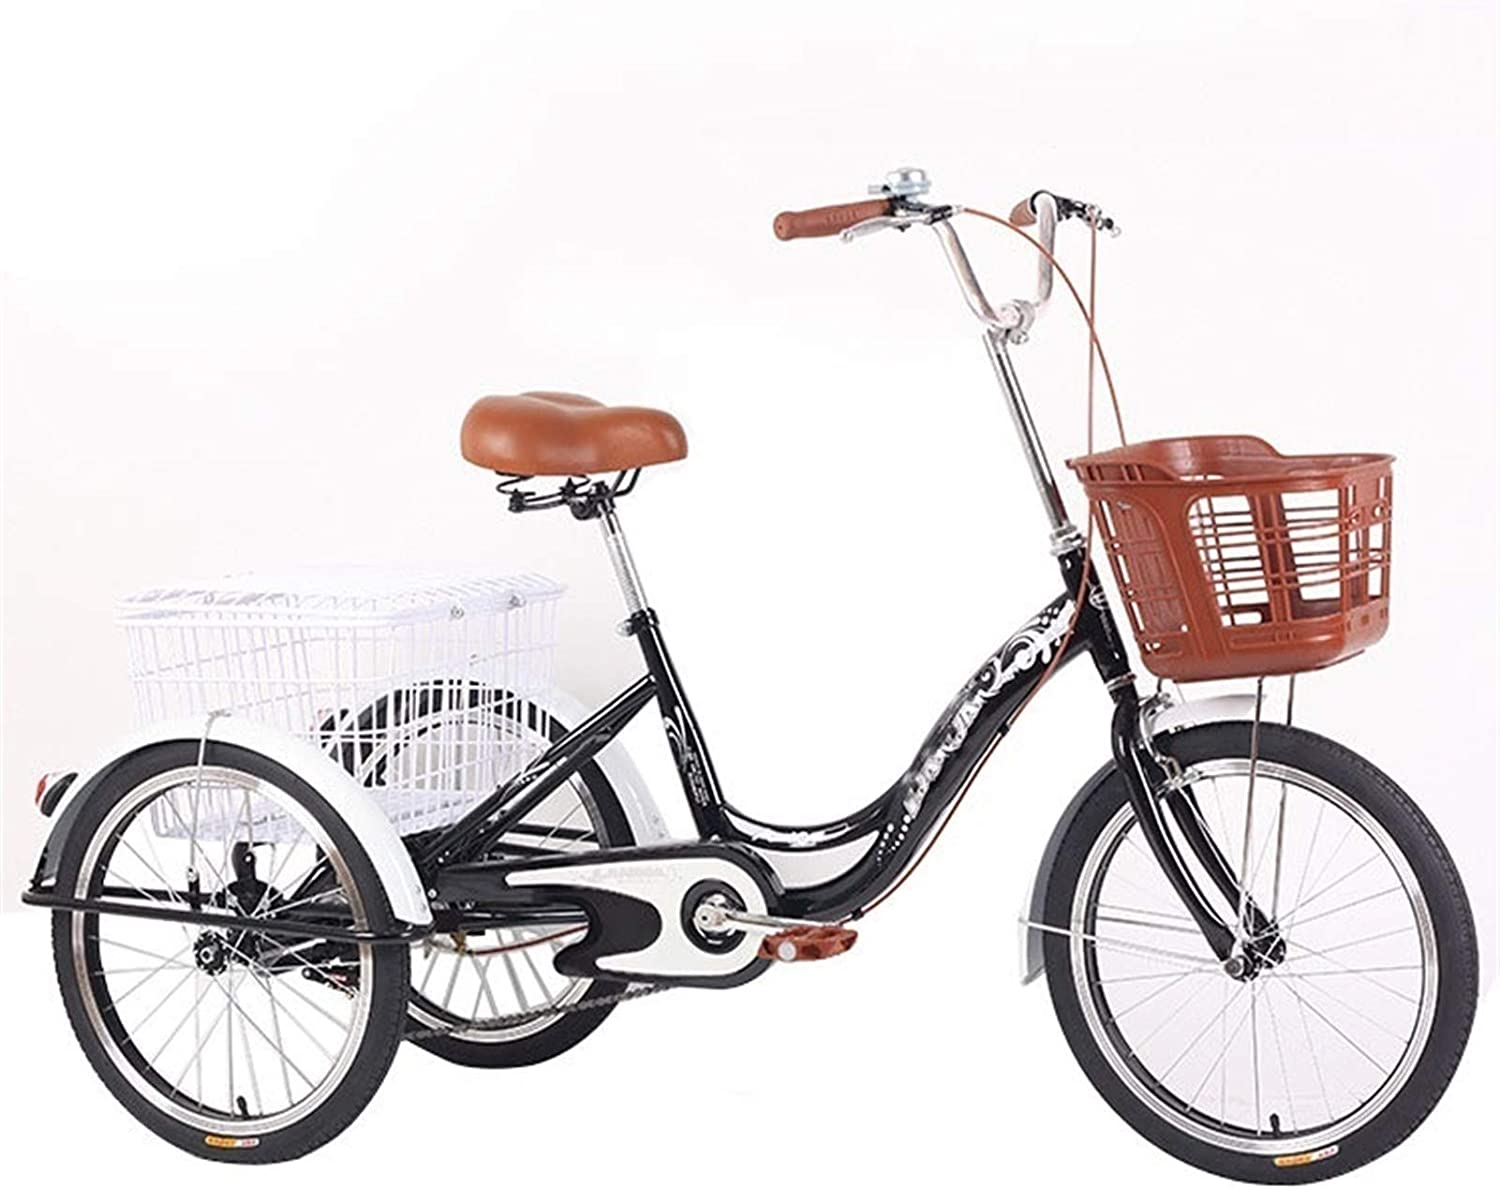 TANGIST Adult Trike Bike At the price of surprise Trikes 20 Ranking TOP18 Wheel 1 Inch 3 Sp Bikes